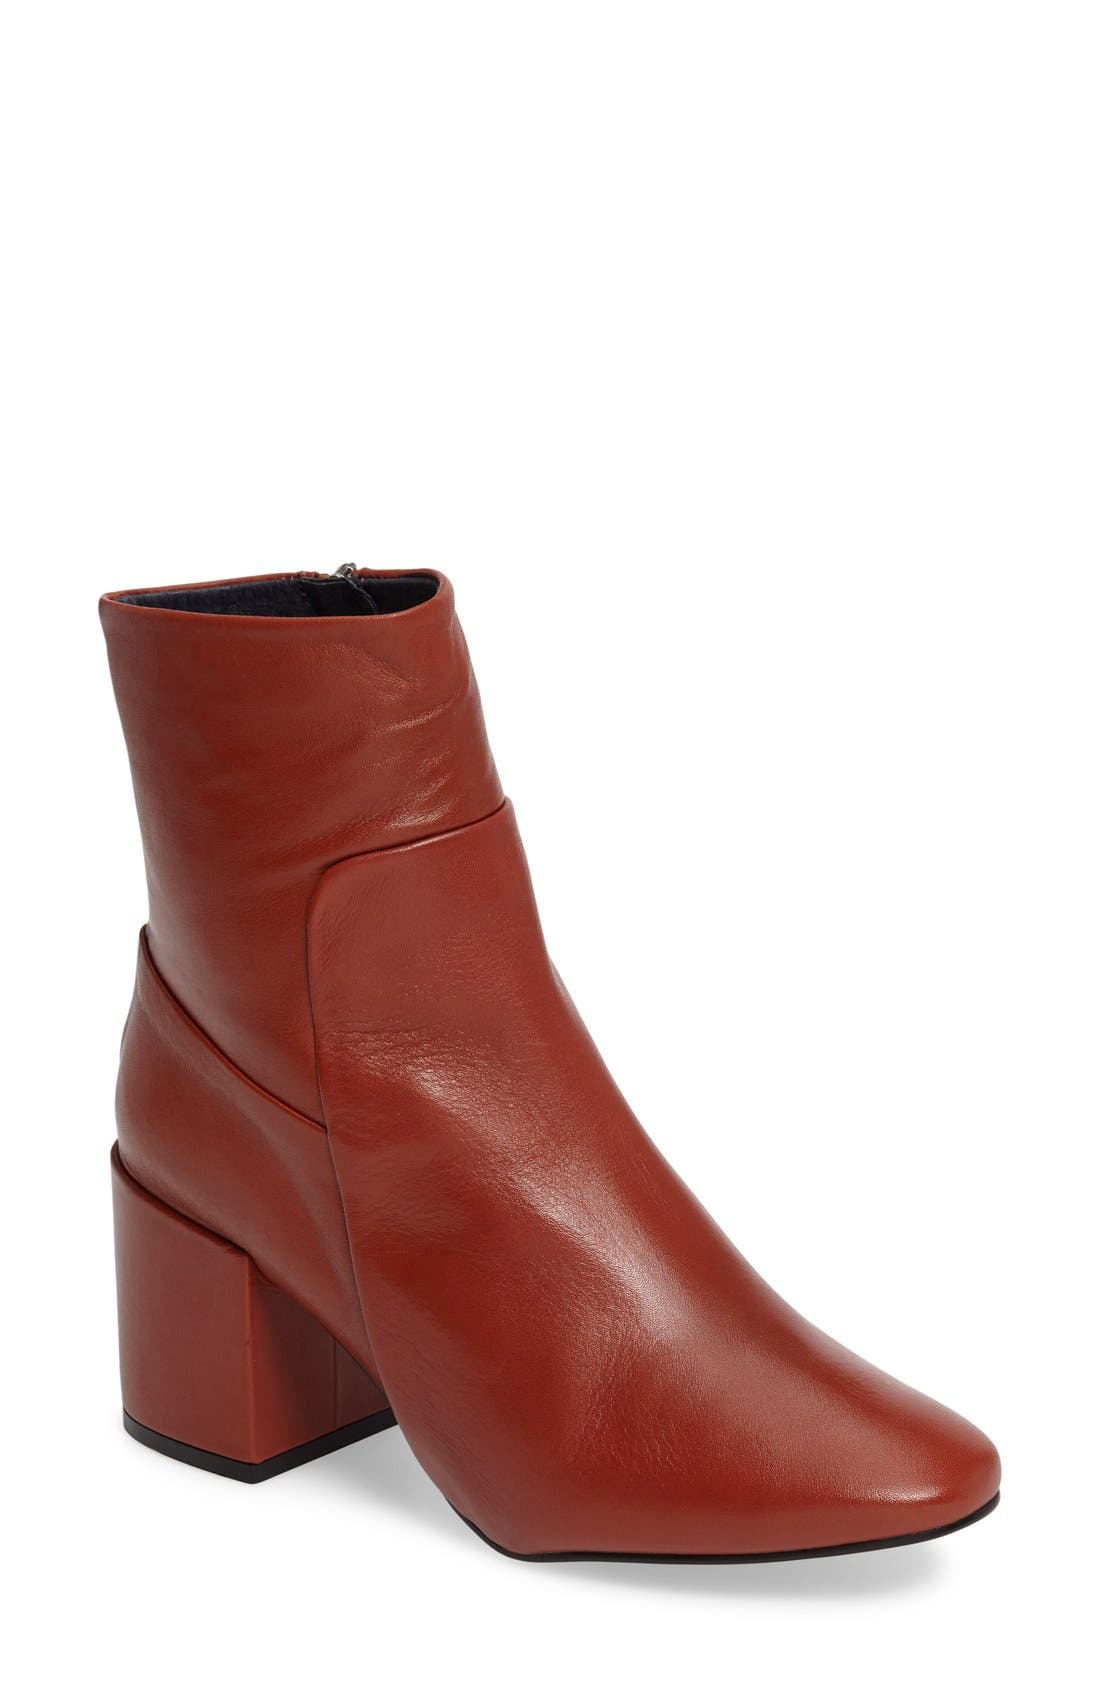 Alternate Image 1 Selected - Topshop Mint Pointy Toe Bootie (Women)